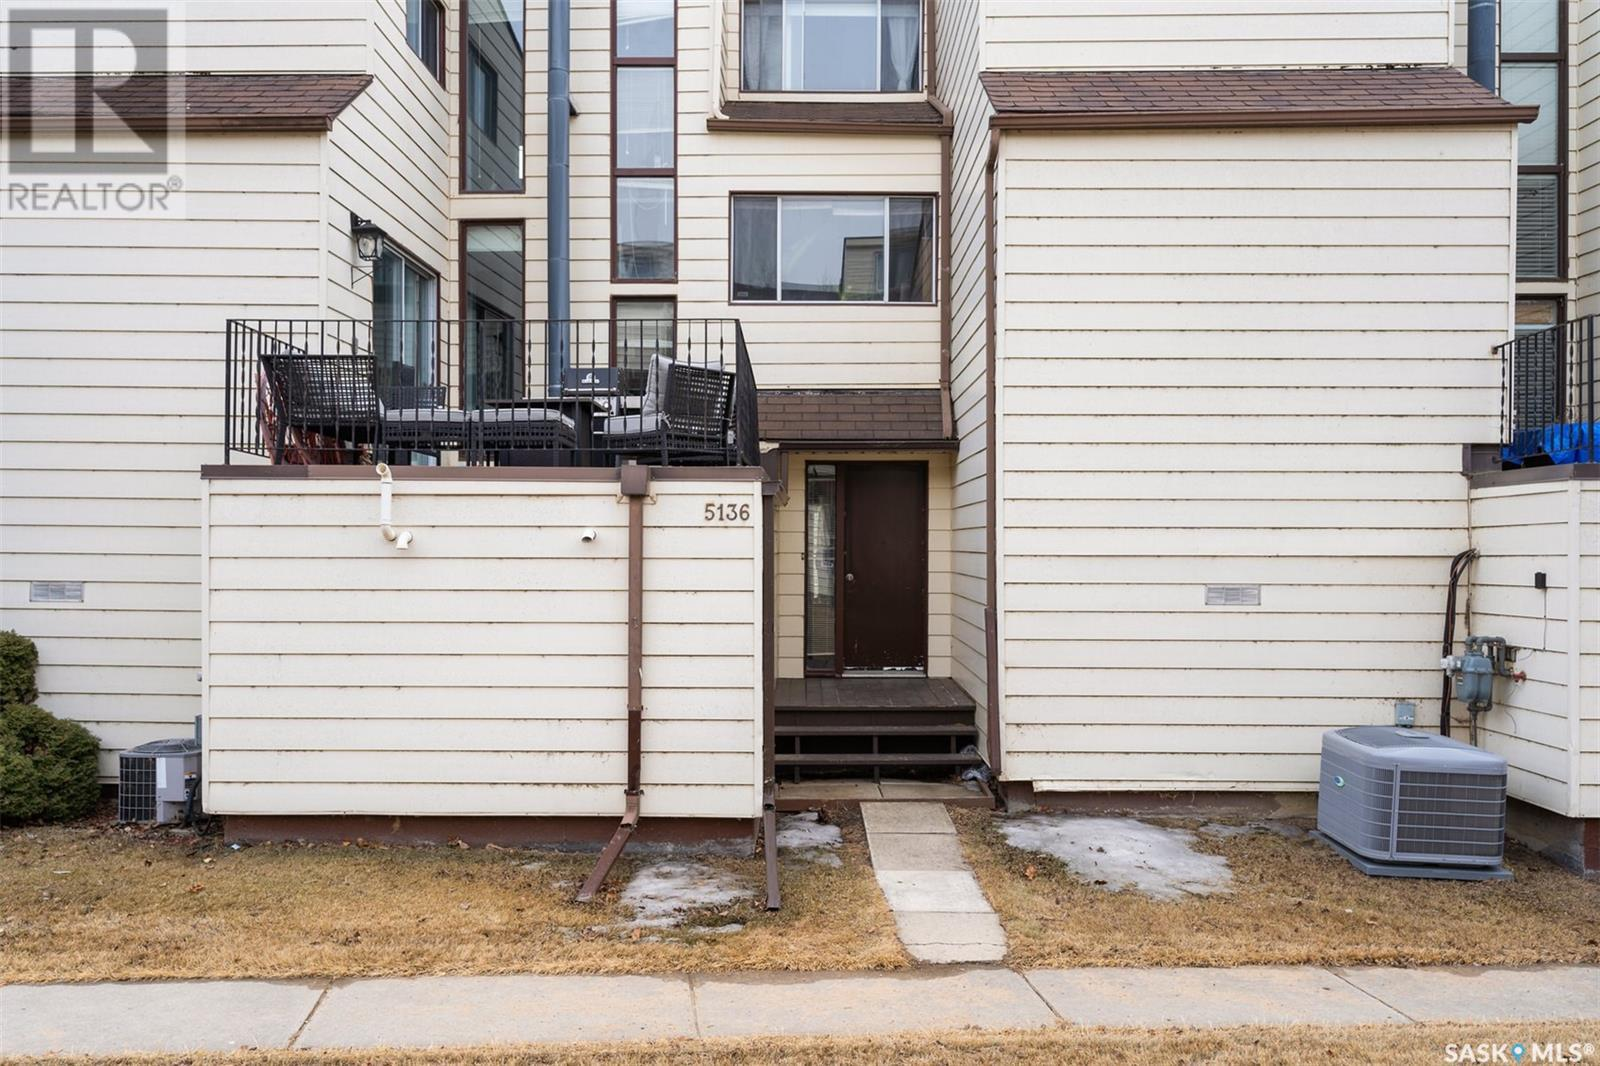 5136 10th AVE, Regina, Saskatchewan, Canada S4T7P5, 3 Bedrooms Bedrooms, Register to View ,2 BathroomsBathrooms,Townhouse,For Sale,SK847009